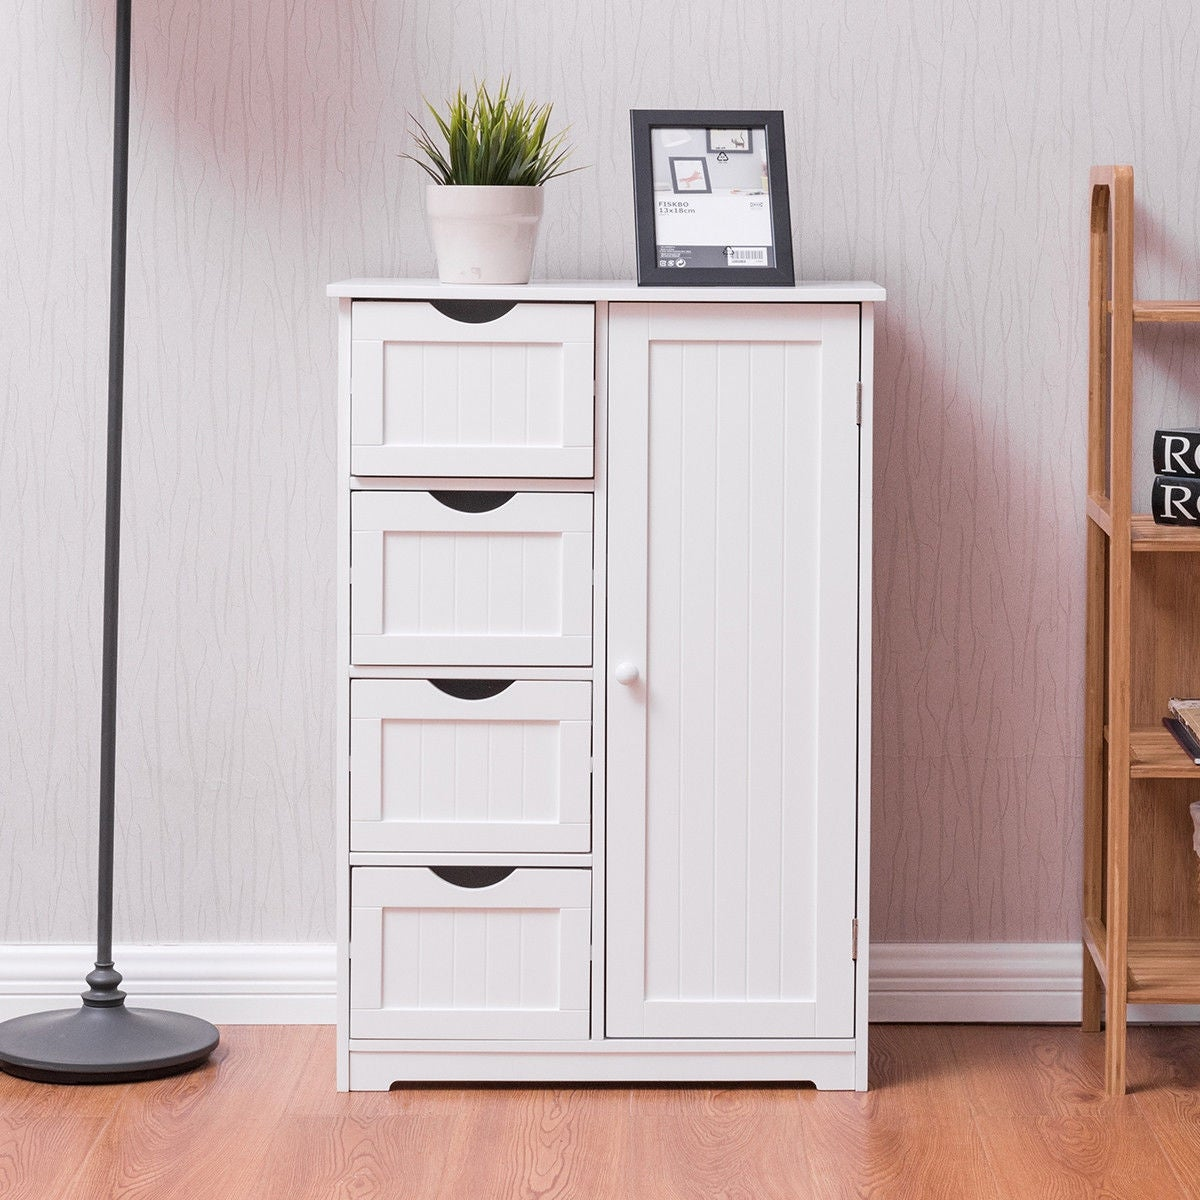 buy bathroom cabinets storage online at overstock our best rh overstock com bathroom storage cabinets free standing bunnings bathroom storage cabinets free standing melbourne